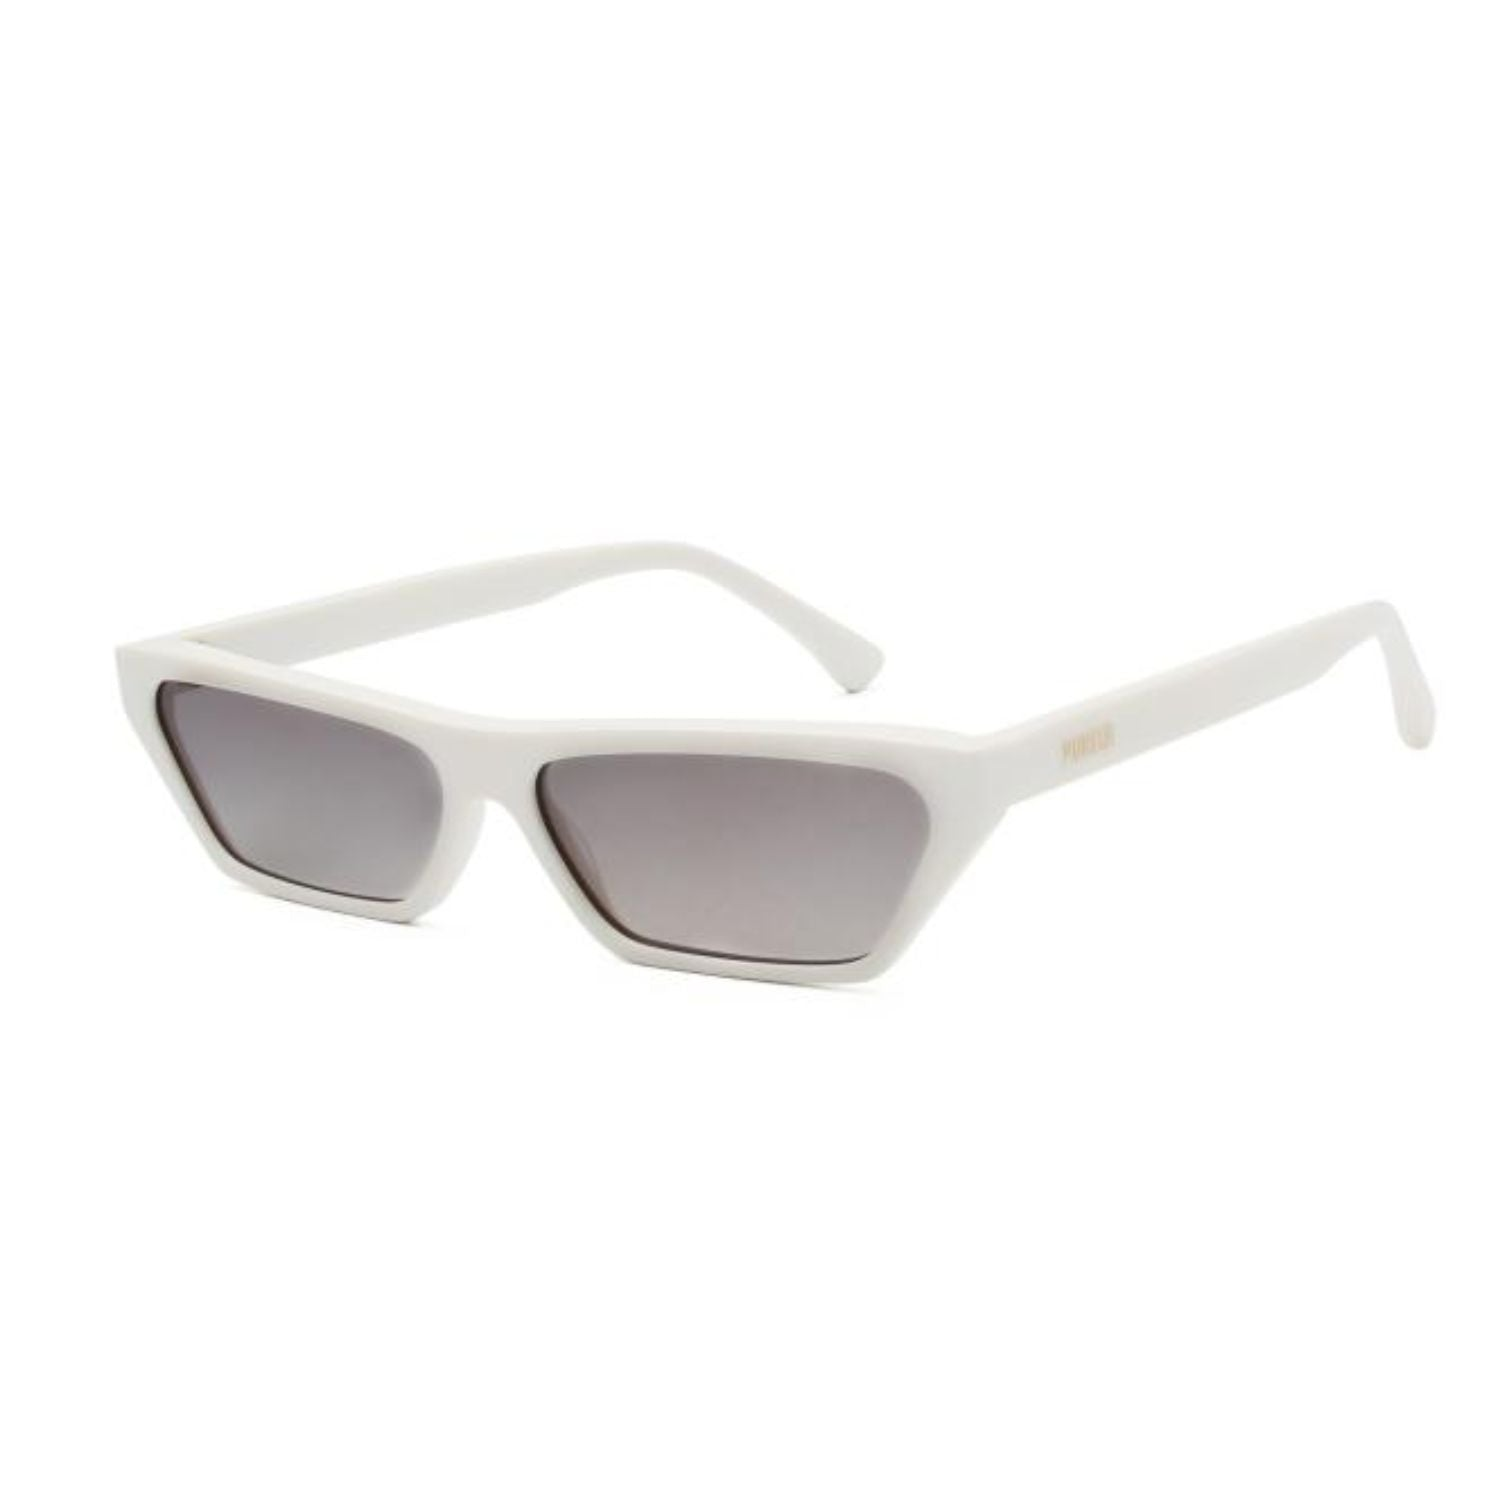 SA3 - Retro Slim Rectangle Cat Eye Fashion Sunglasses